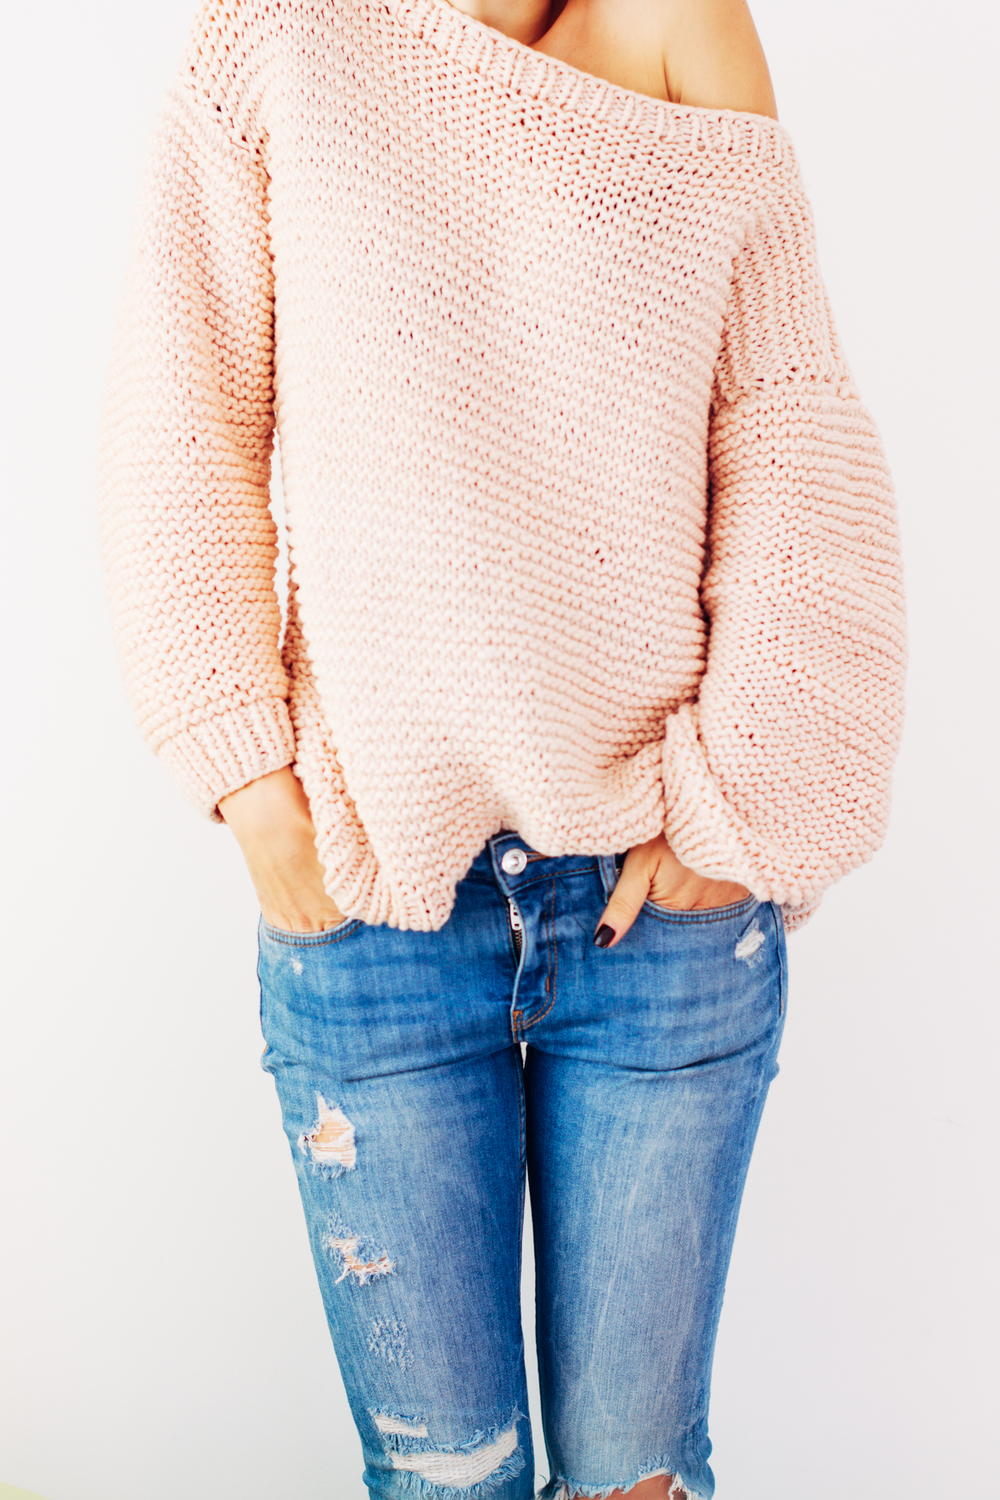 Knitting Designs Sweaters : Peachy keen oversize knitted sweater allfreeknitting